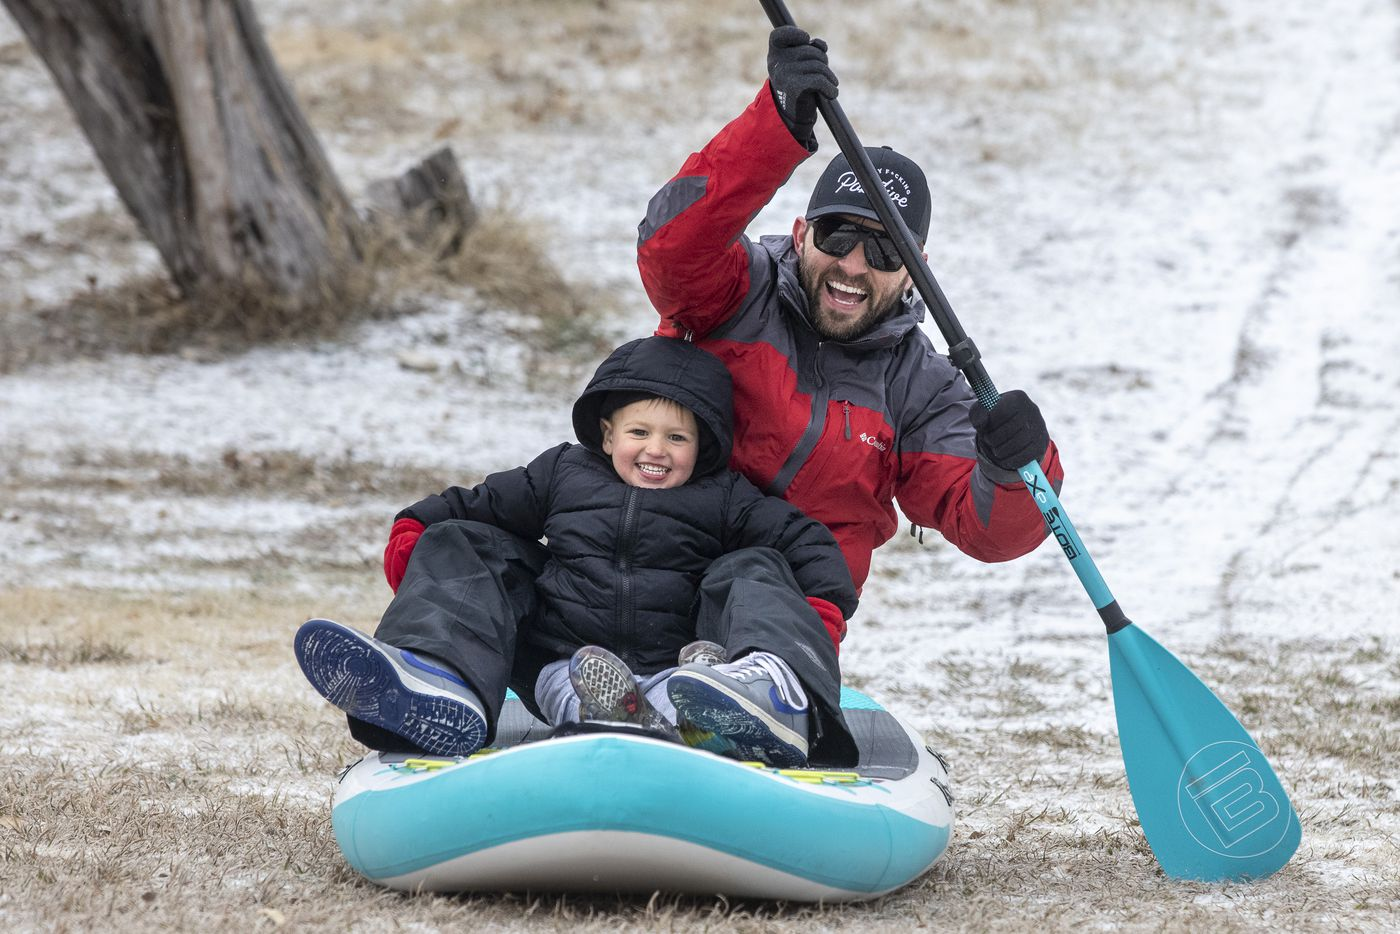 John Bain and his son, Everett, 3, sled down a hill on a paddleboard in the snow at Flag Pole Hill Park on Sunday, Feb. 14, 2021, in Dallas.